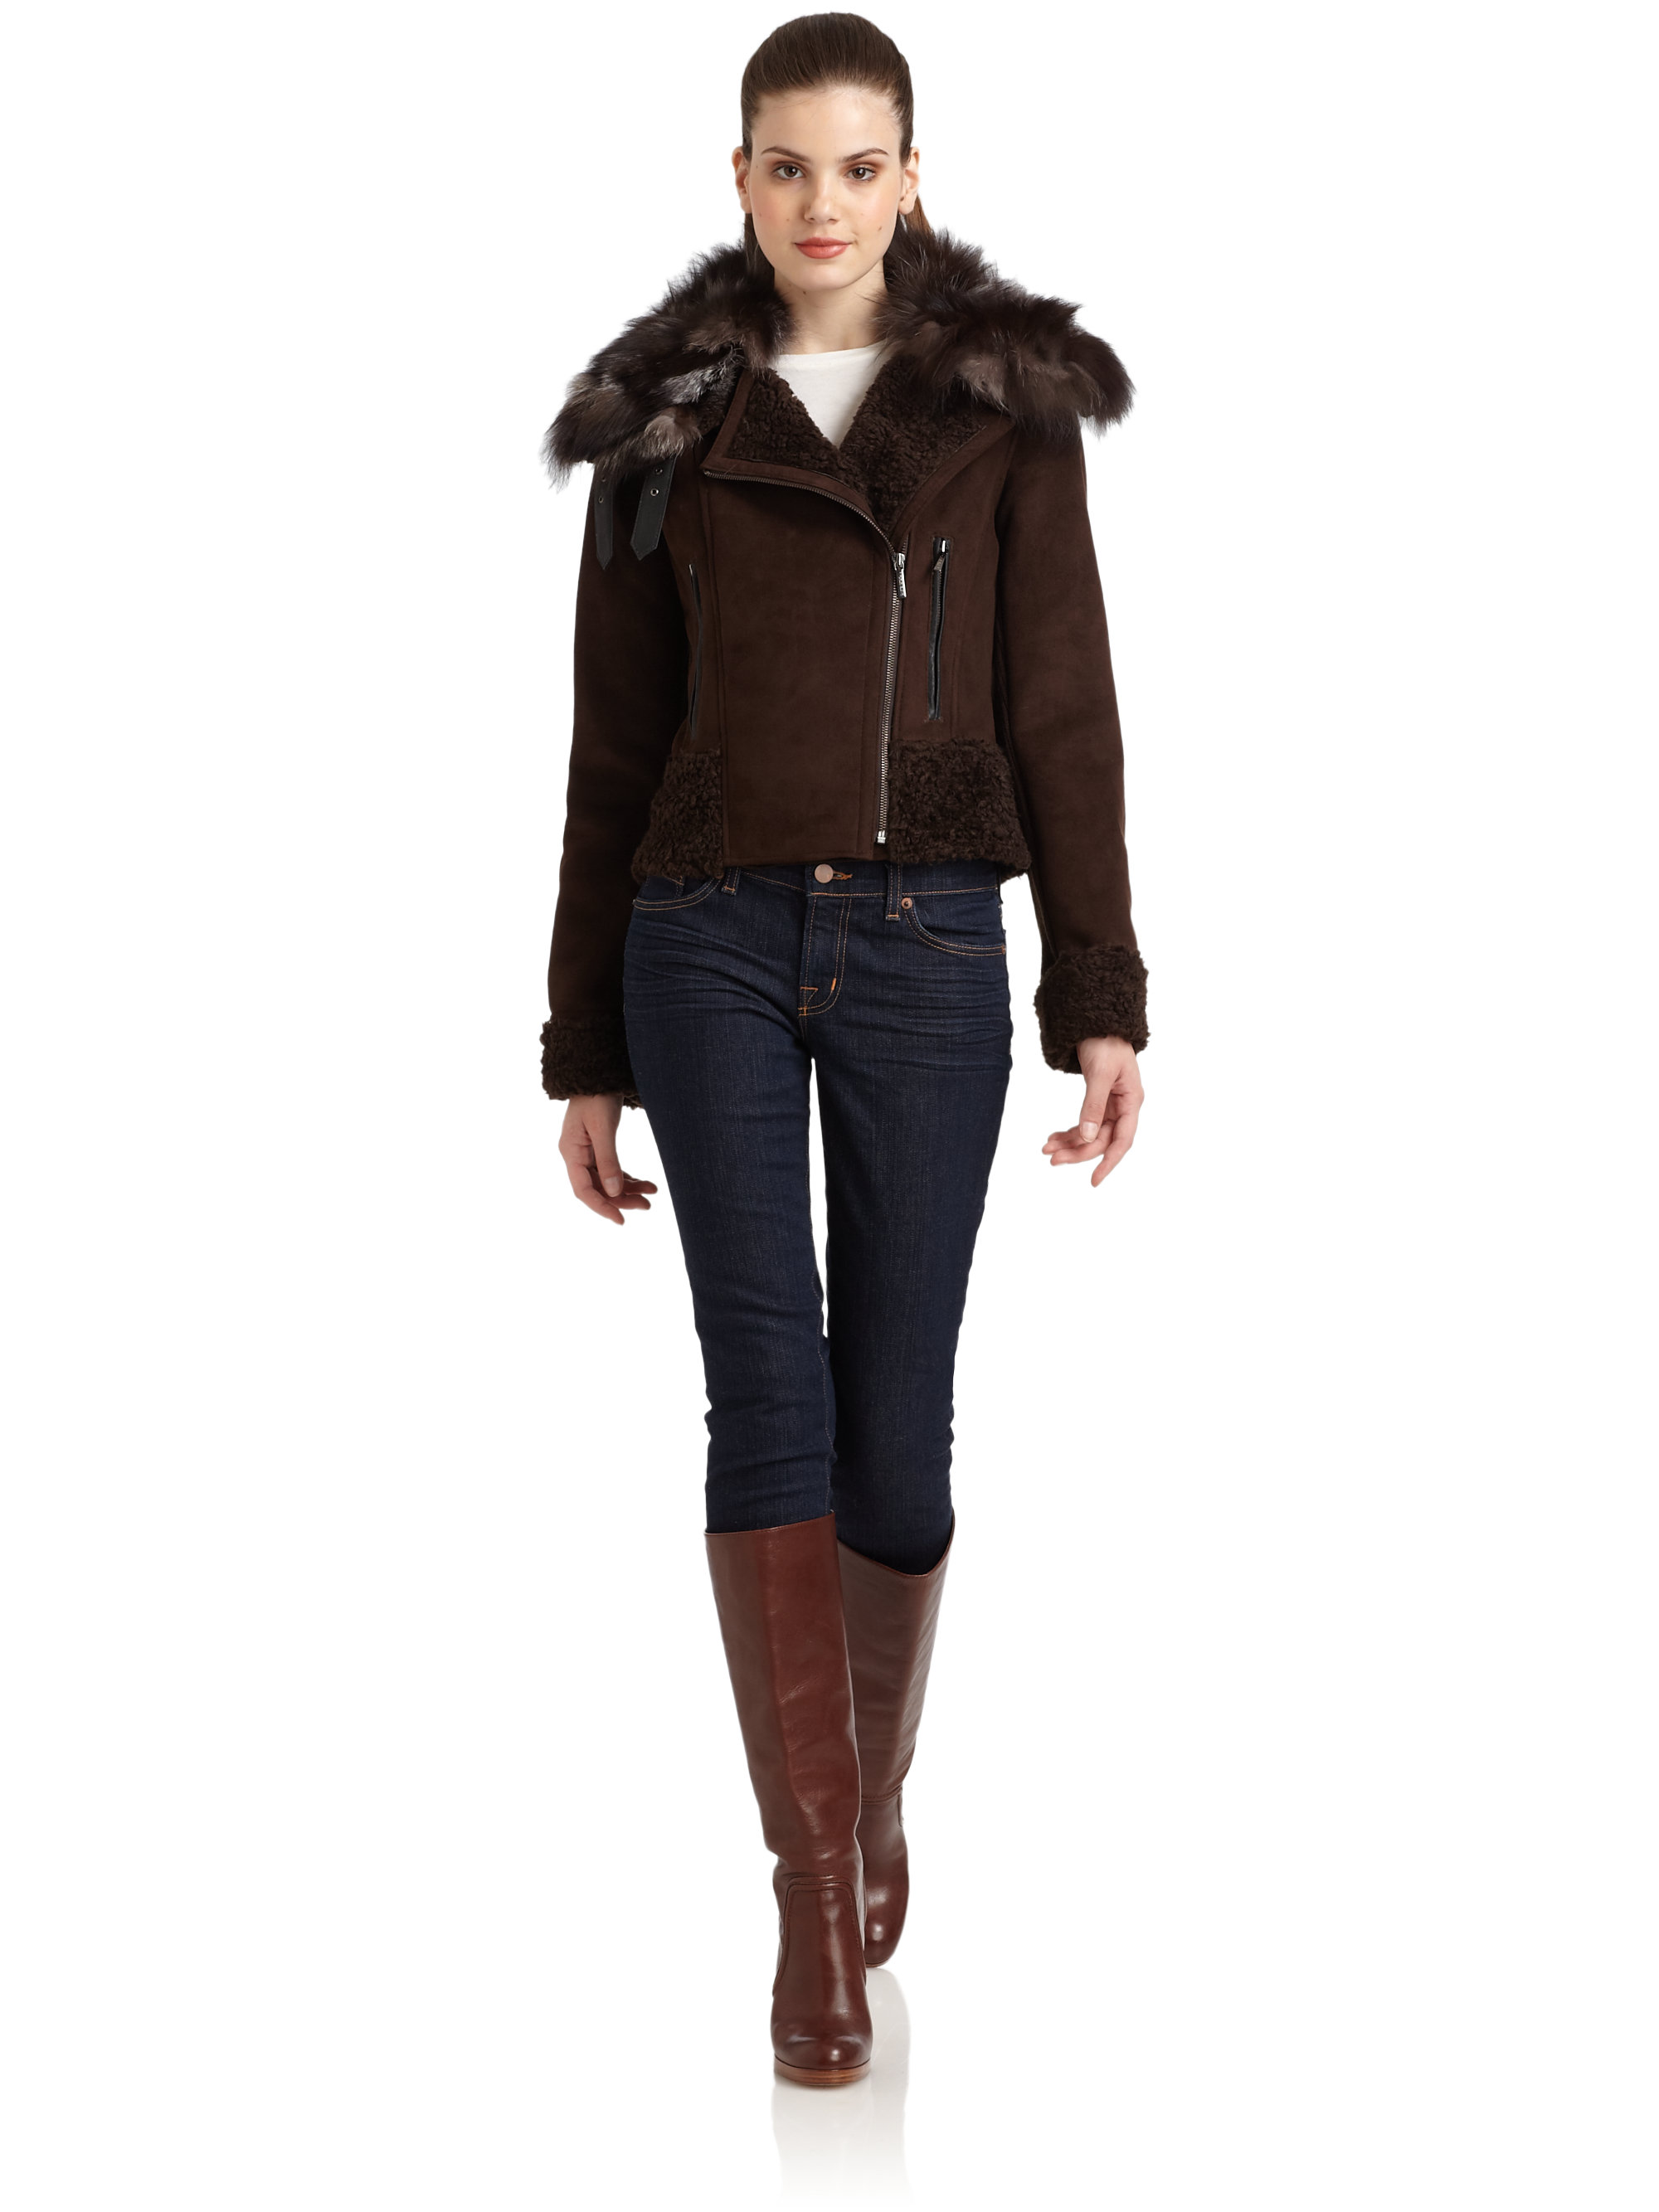 Laundry by shelli segal Fox Furcollar Faux Fur Shearling Jacket in ...